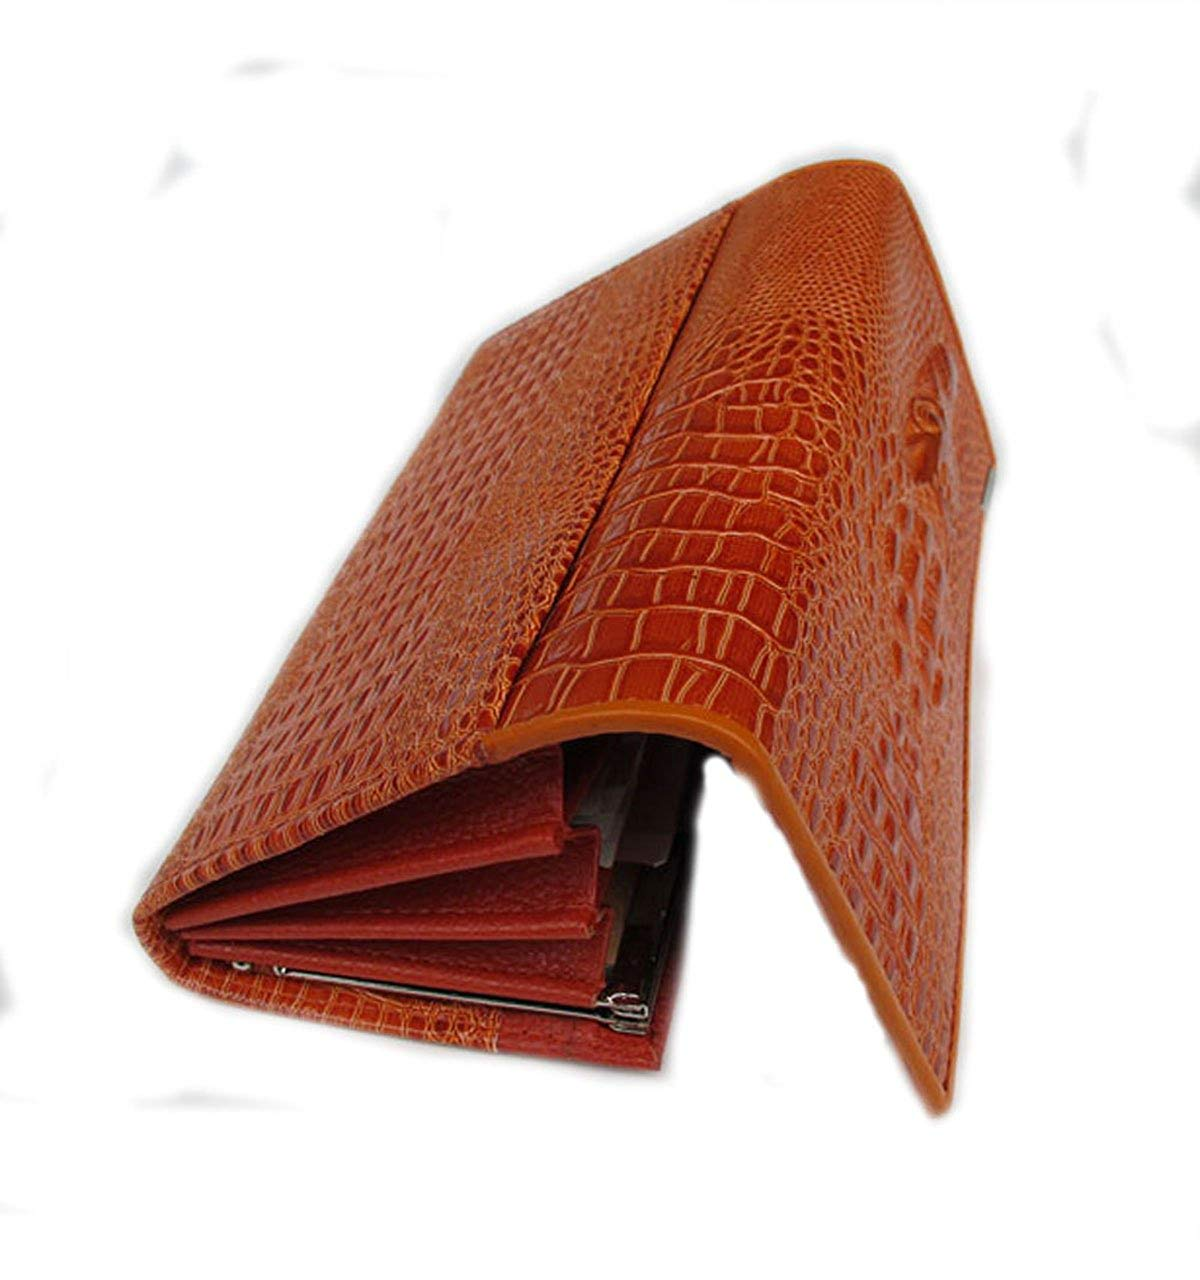 BEAUTIFUL CROCODILE PATTERN CLUTCH WALLET IN BROWN COLOR MADE FROM COWHIDE